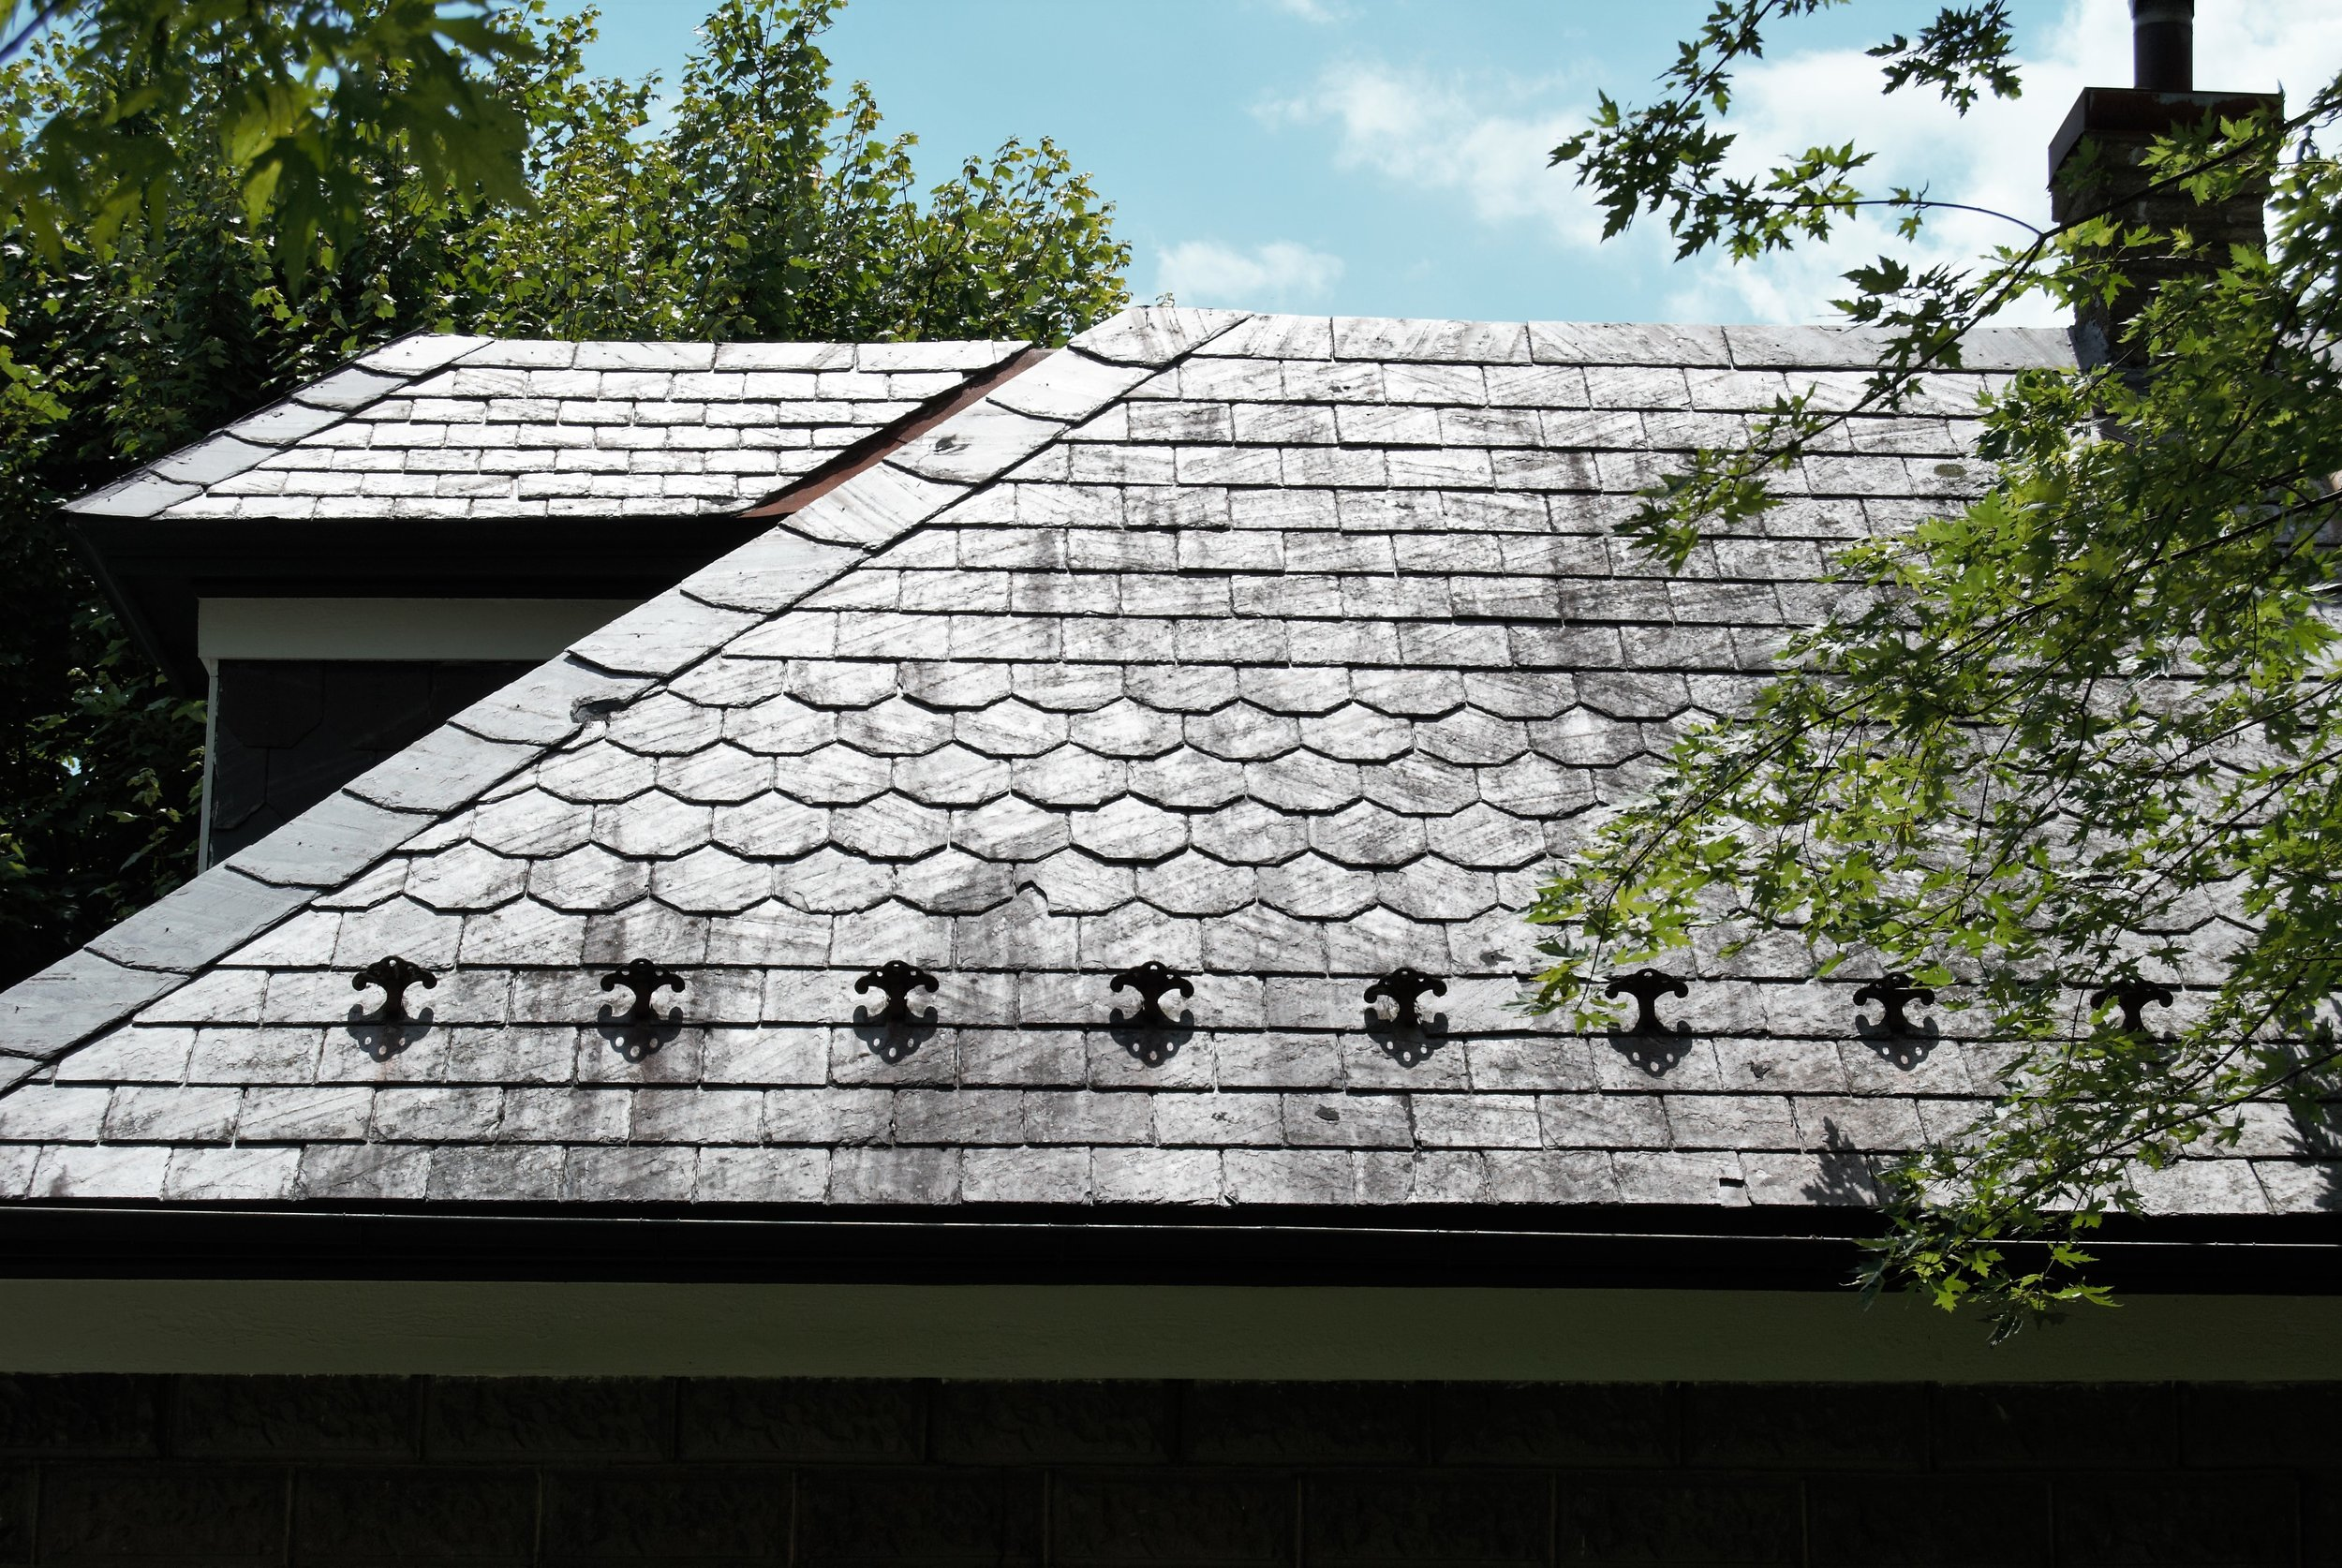 - Example of Slate Roofing on Borough Hall